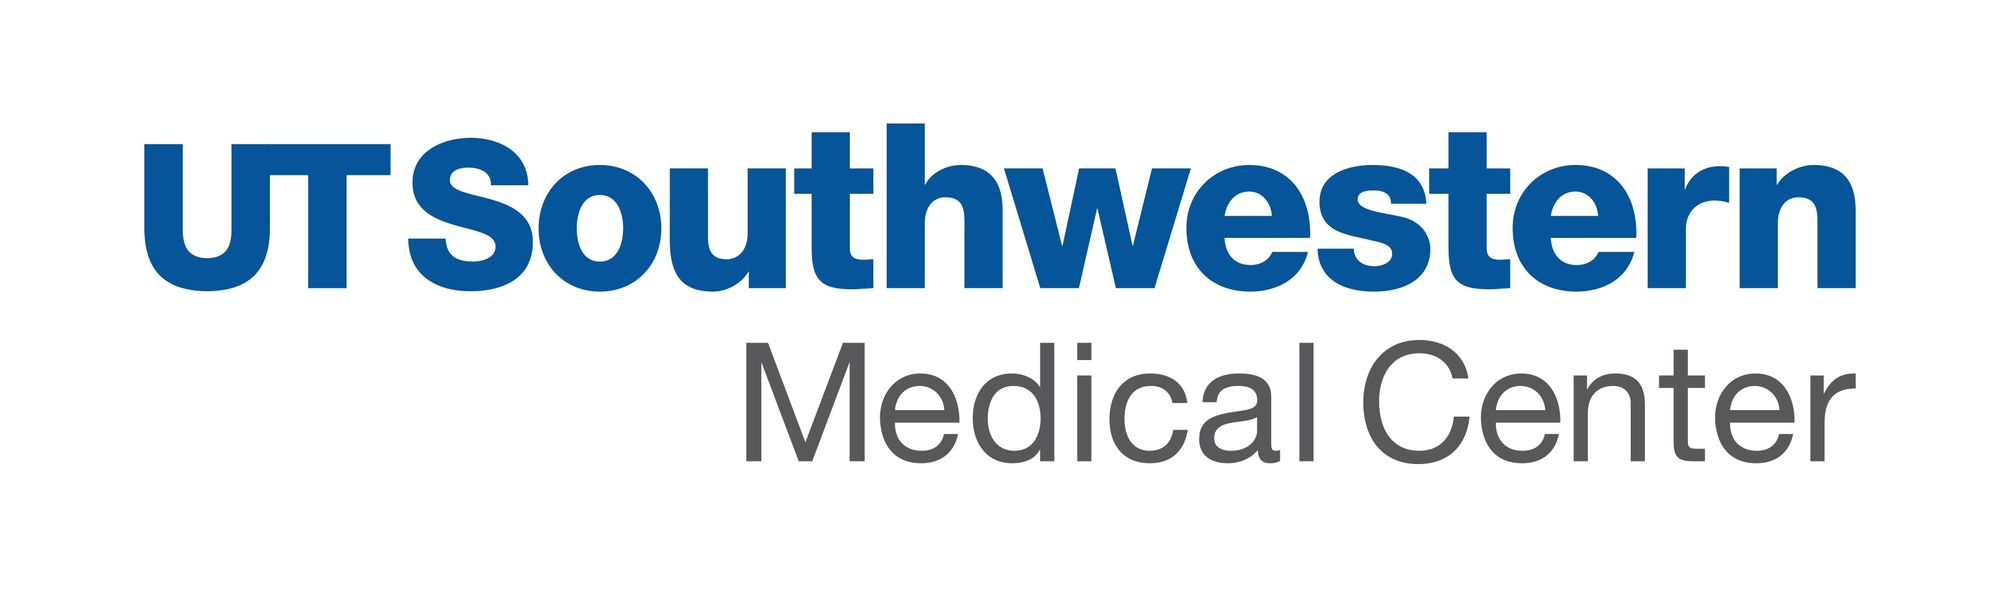 UTSouthwestern Medical Center